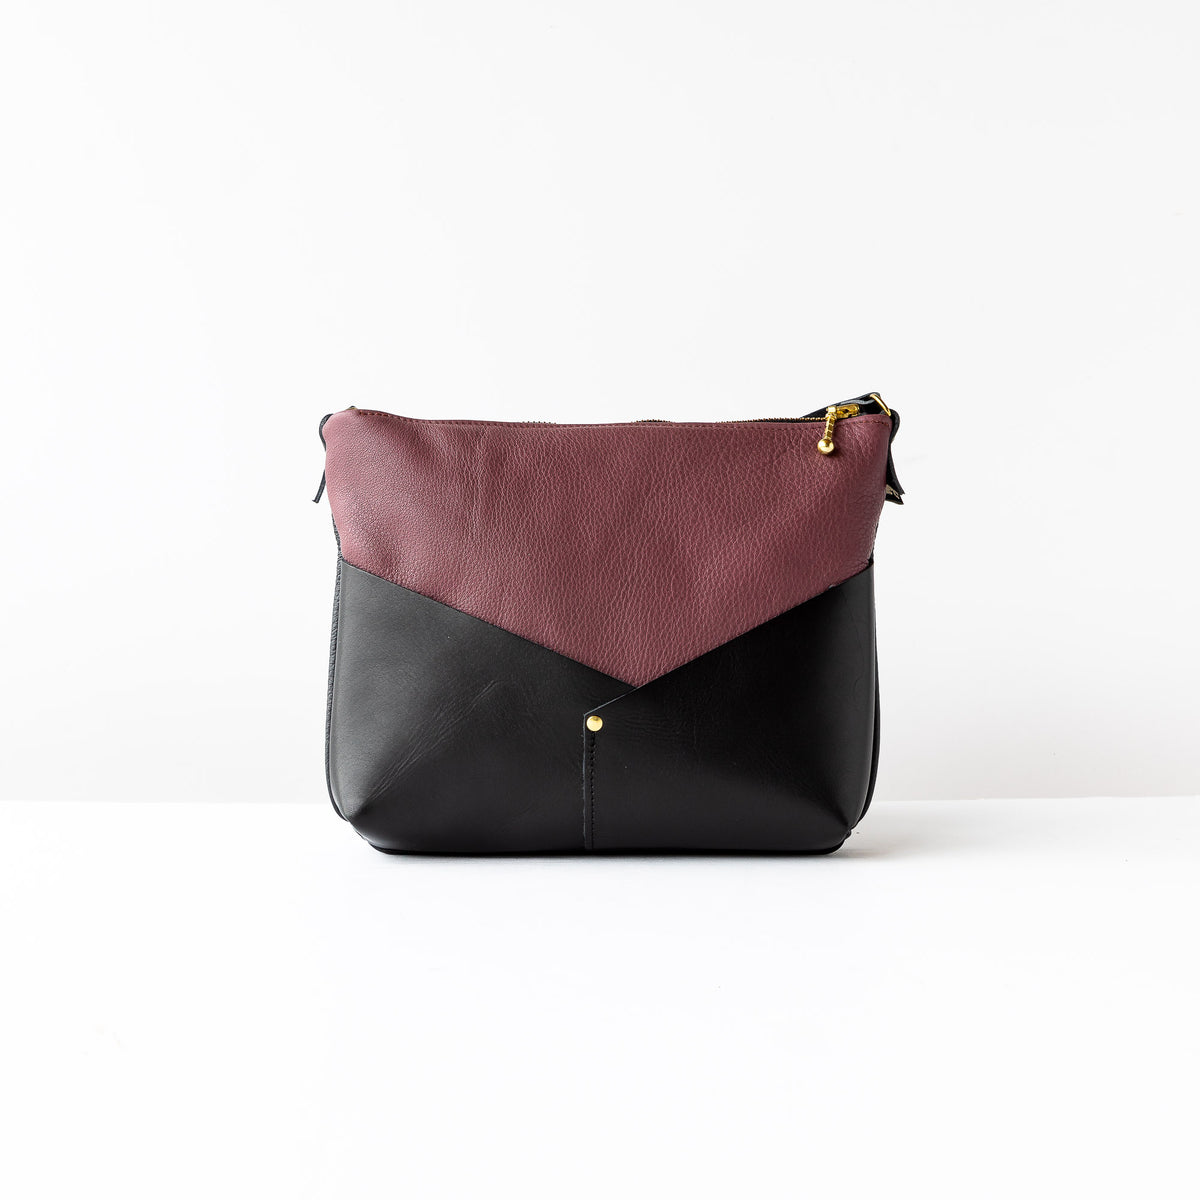 Woodstock / Mauve Leather & Black Leather - Small Bag - Sold by Chic & Basta